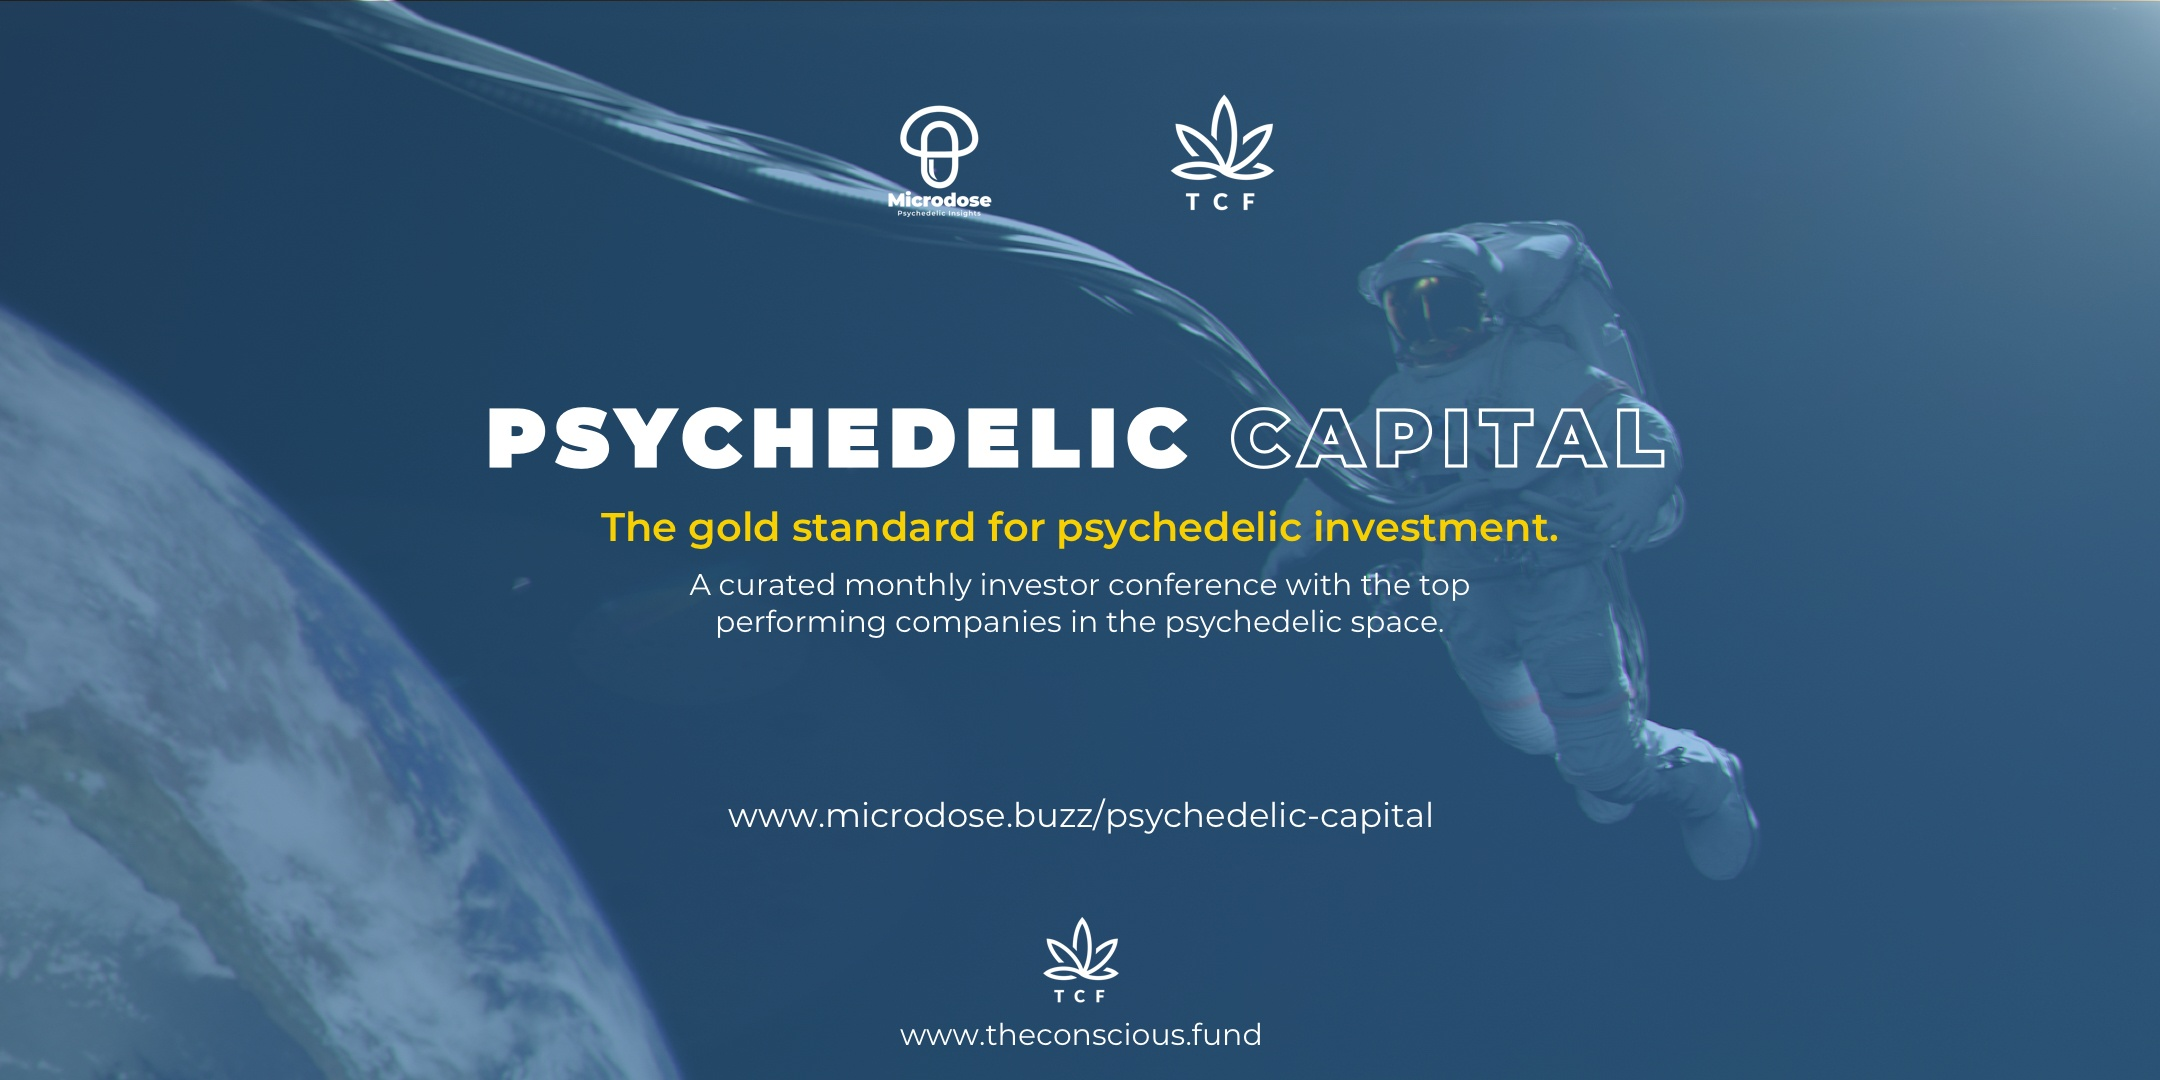 psychedelic_capital_conference